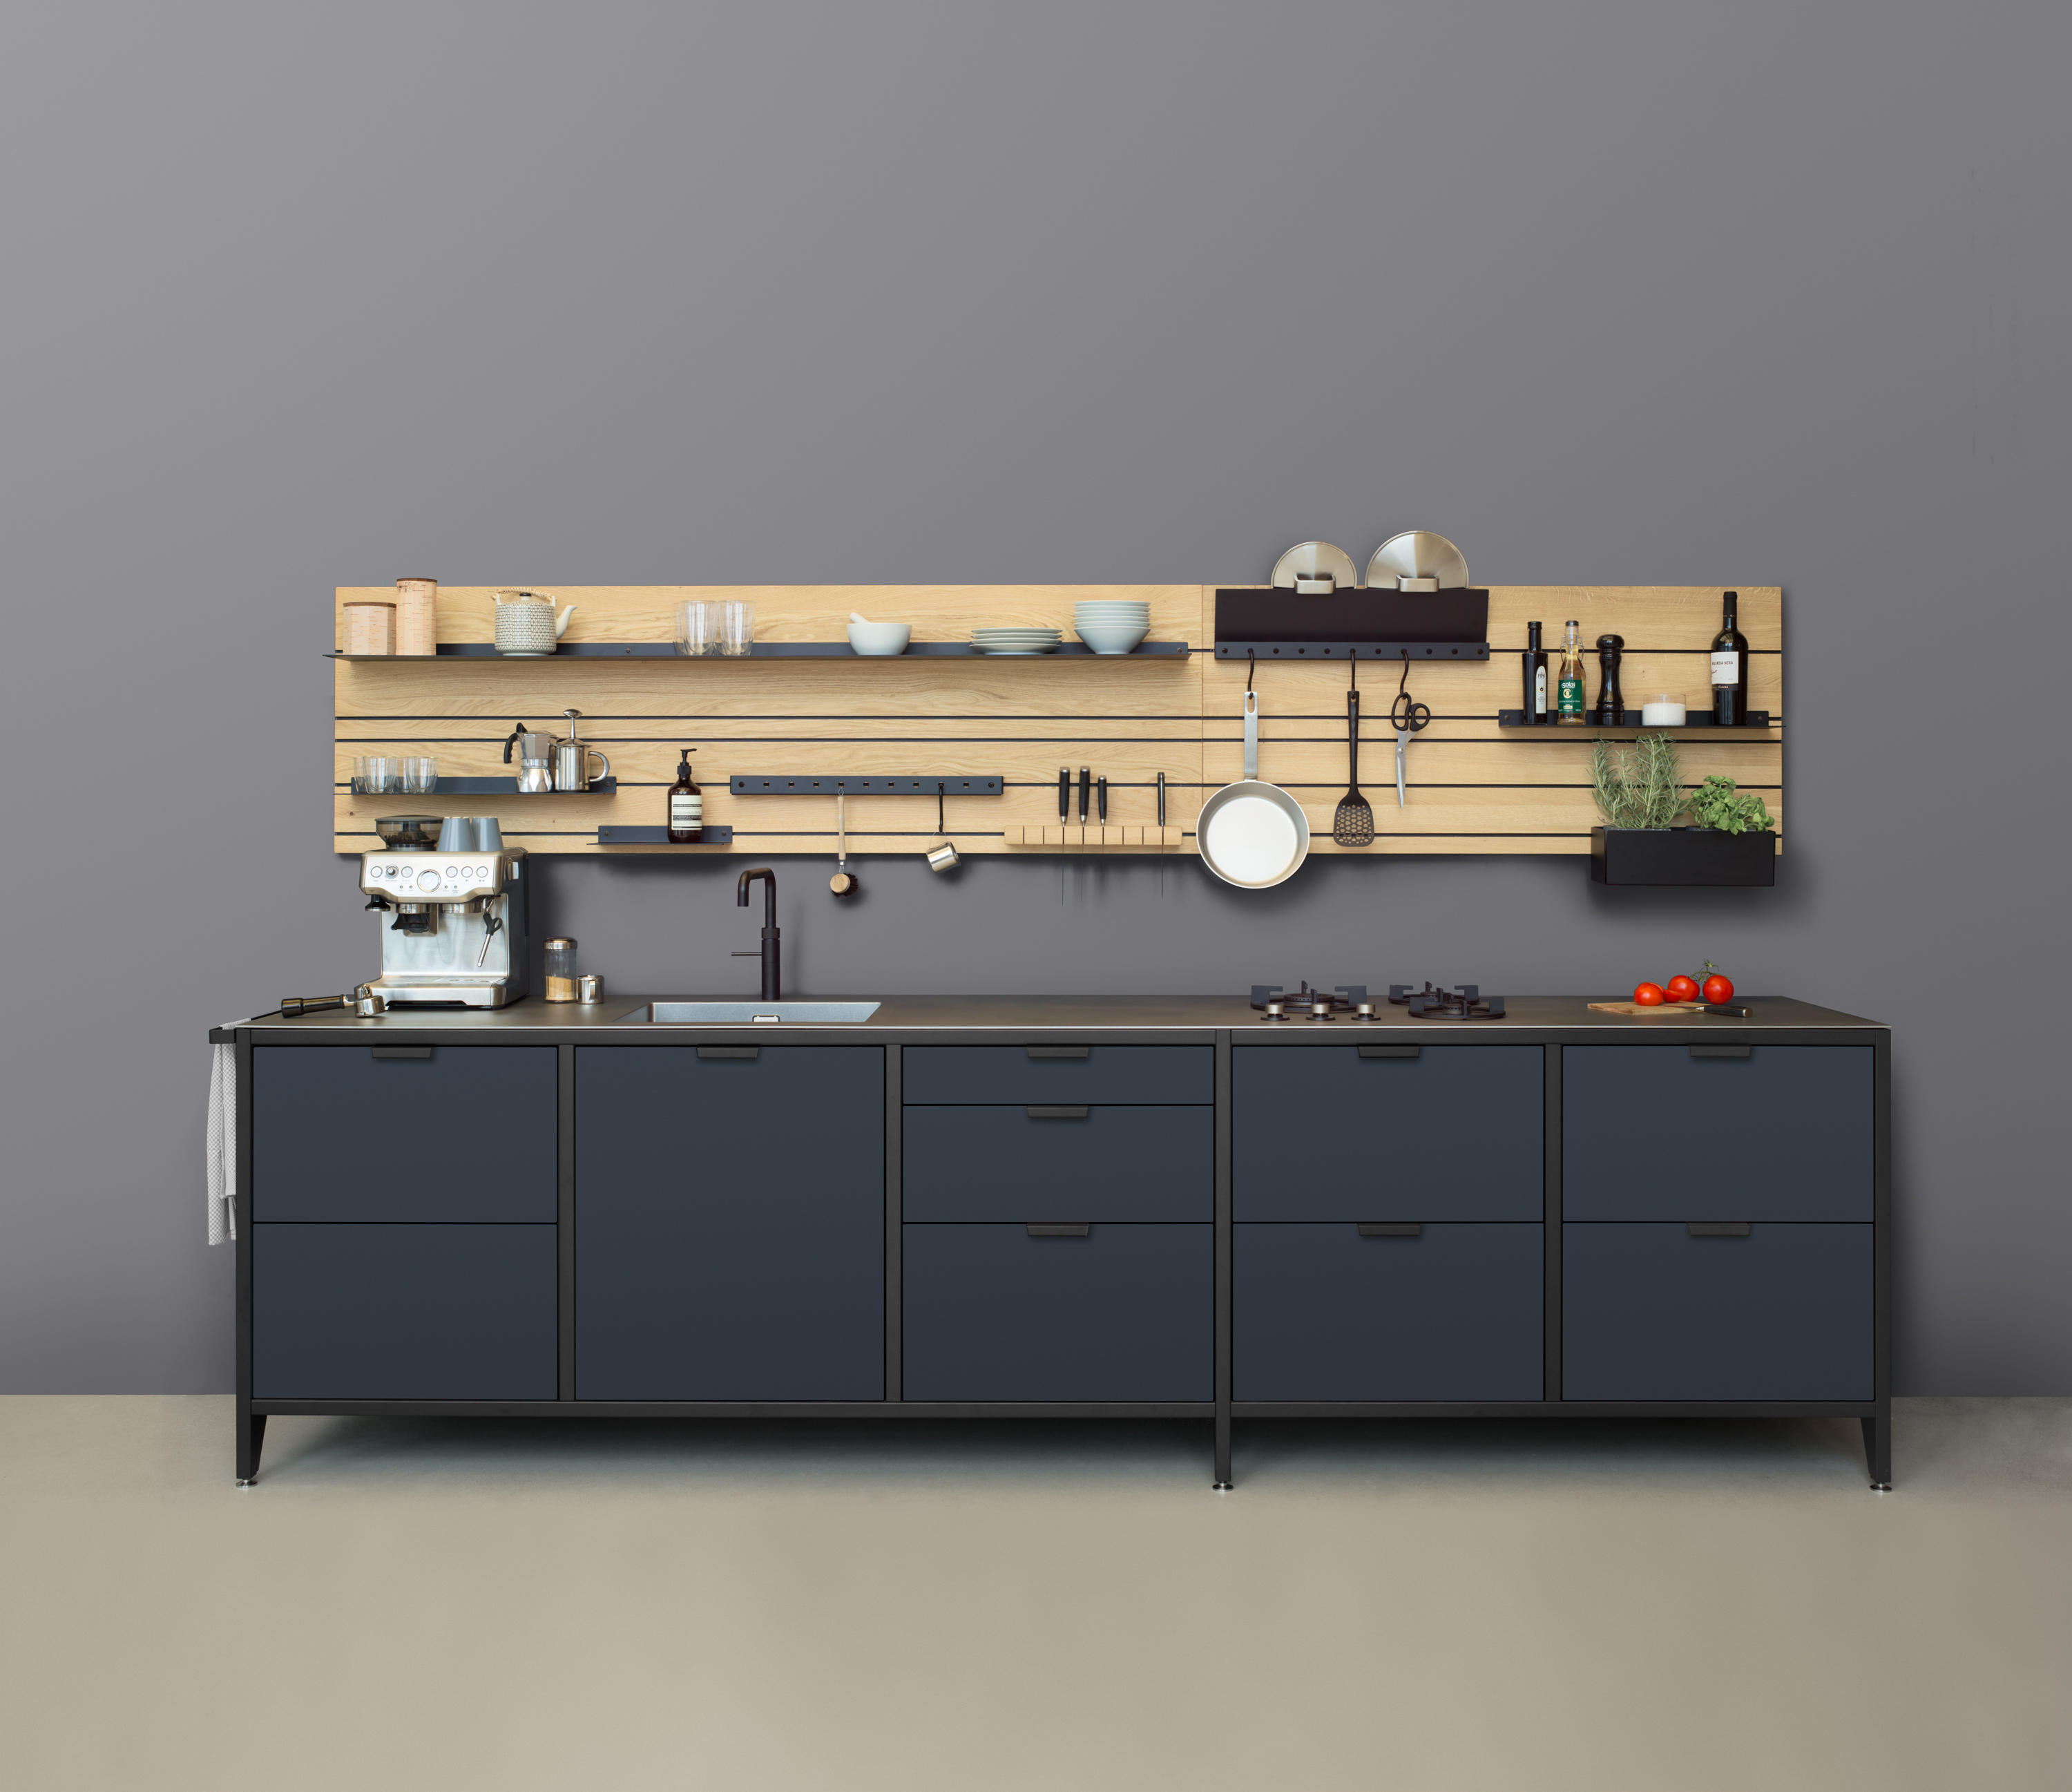 werk modular kitchen modular kitchens from jan cray architonic. Black Bedroom Furniture Sets. Home Design Ideas